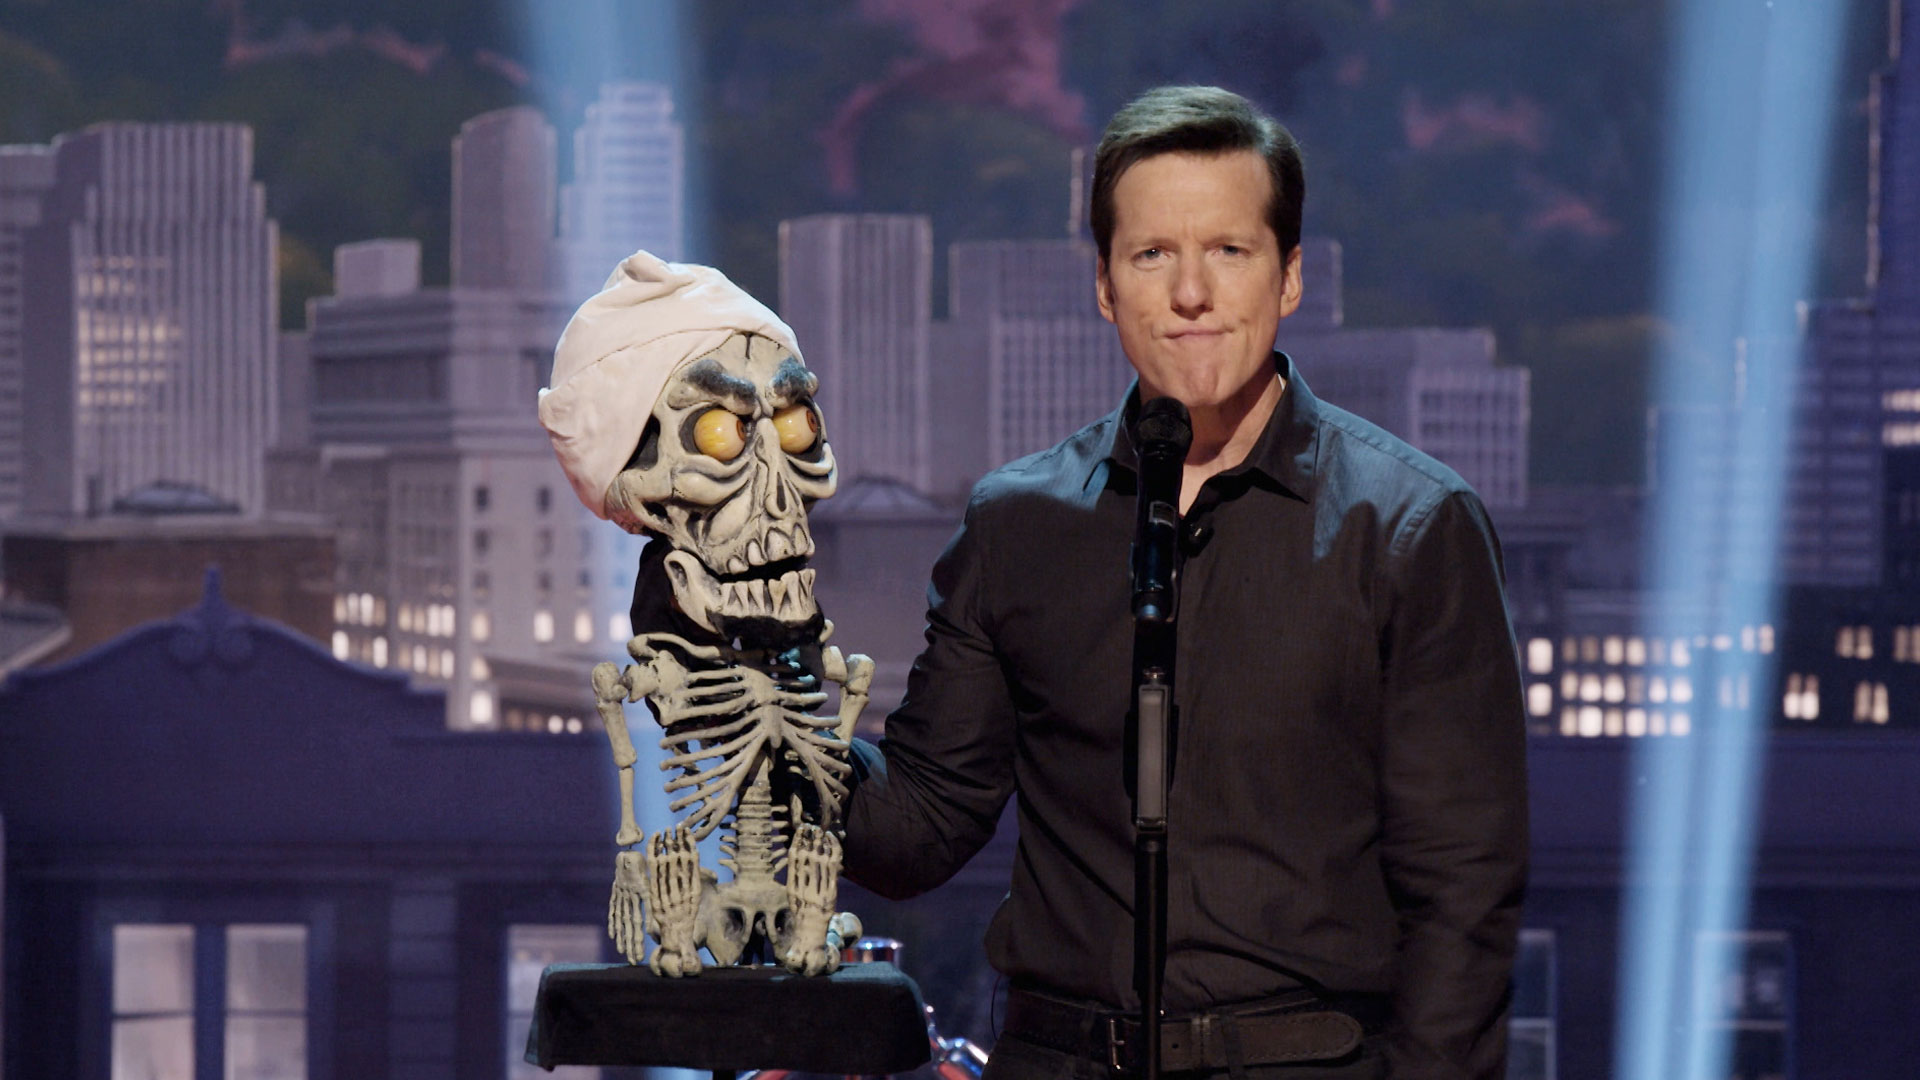 """Three questions following a viewing of Jeff Dunham's NBC primetime special, """"Unhinged in Hollywood"""""""